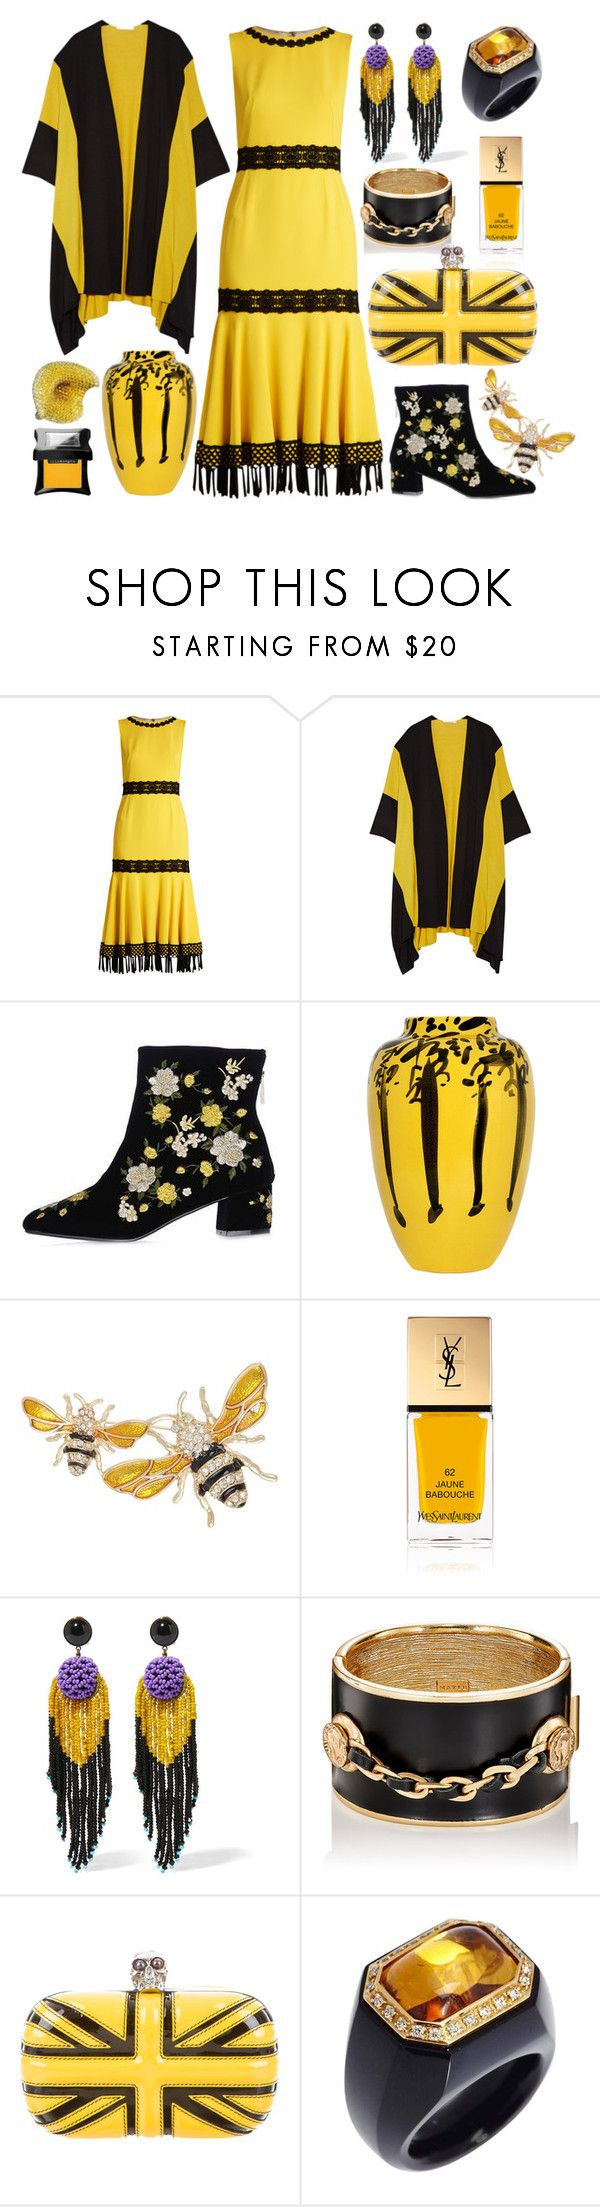 """A Dose Of Radiance☀️"" by yournightnurse ❤ liked on Polyvore featuring Dolce&Gabbana, Victor Alfaro, Topshop, Ceramica Gatti 1928, Napier, Yves Saint Laurent, Etro, Maison Mayle, Alexander McQueen and Palmiero"